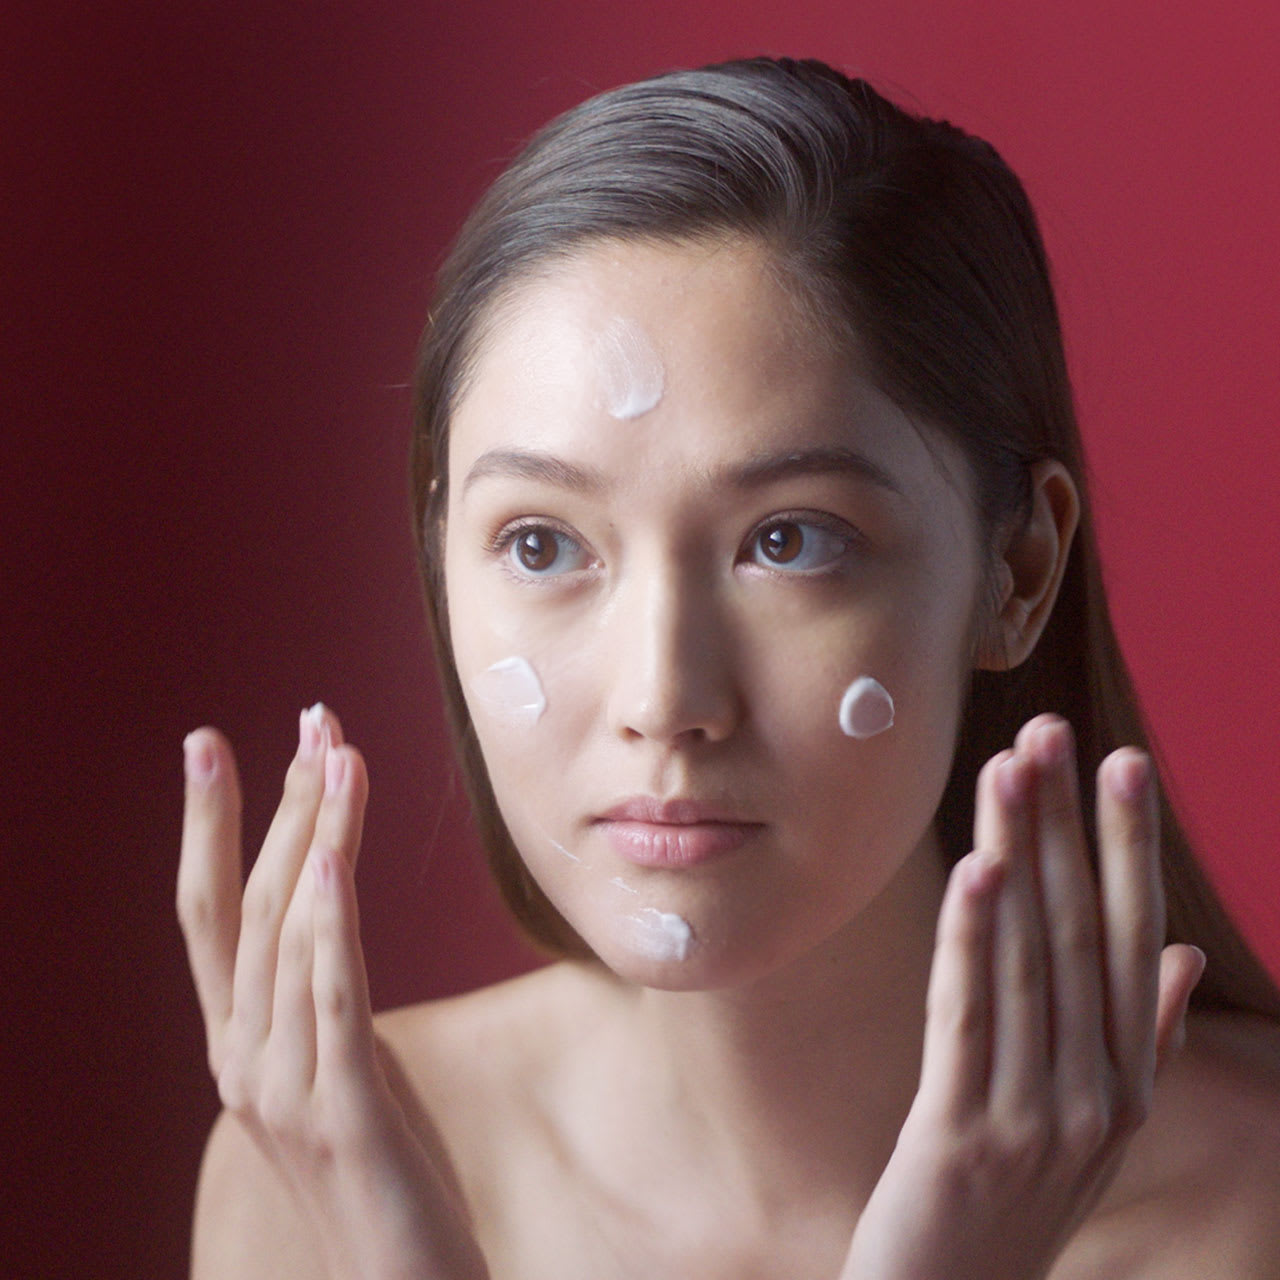 Skin Refining Treatment How To Use 1